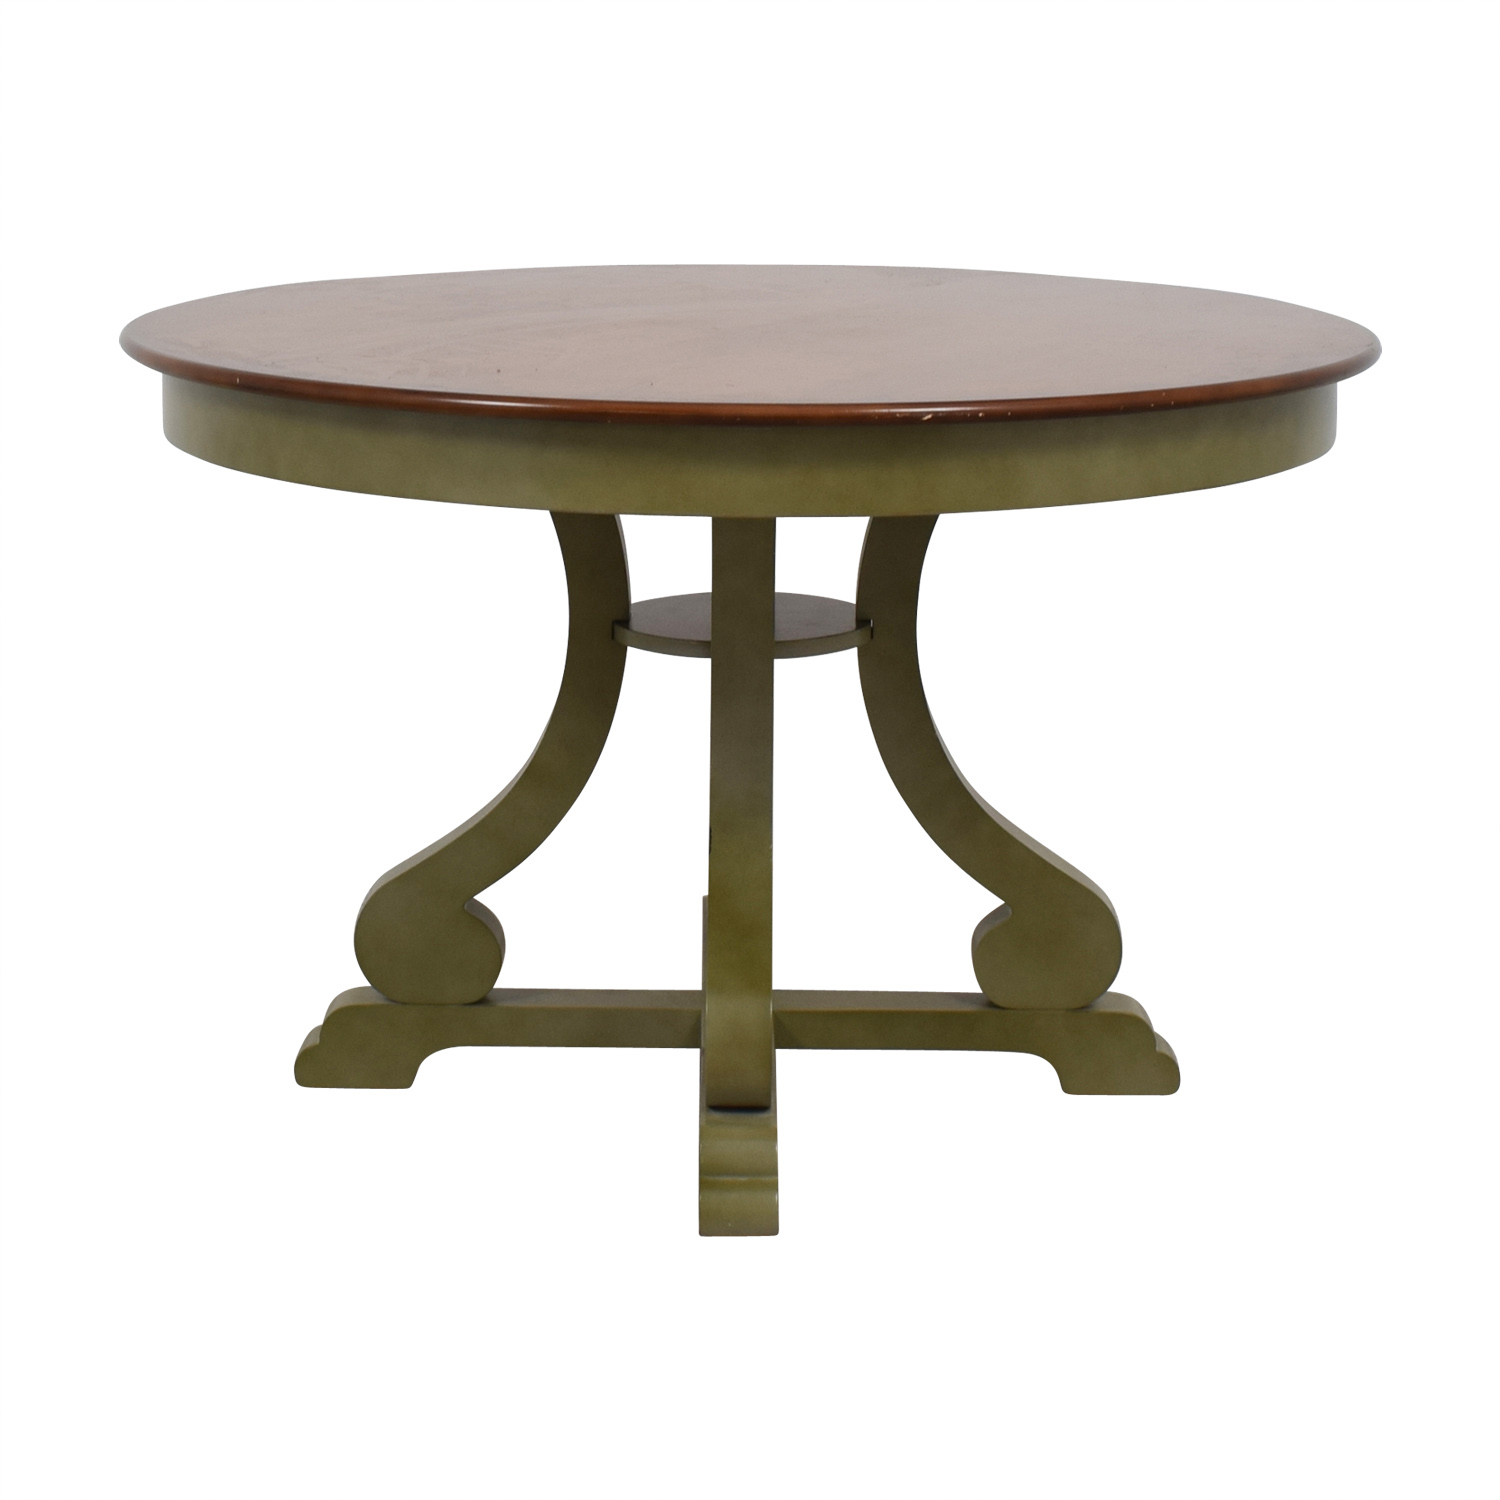 1000% OFF - Pier 100 Pier 100 Imports Green and Wood Round Dining Table / Tables